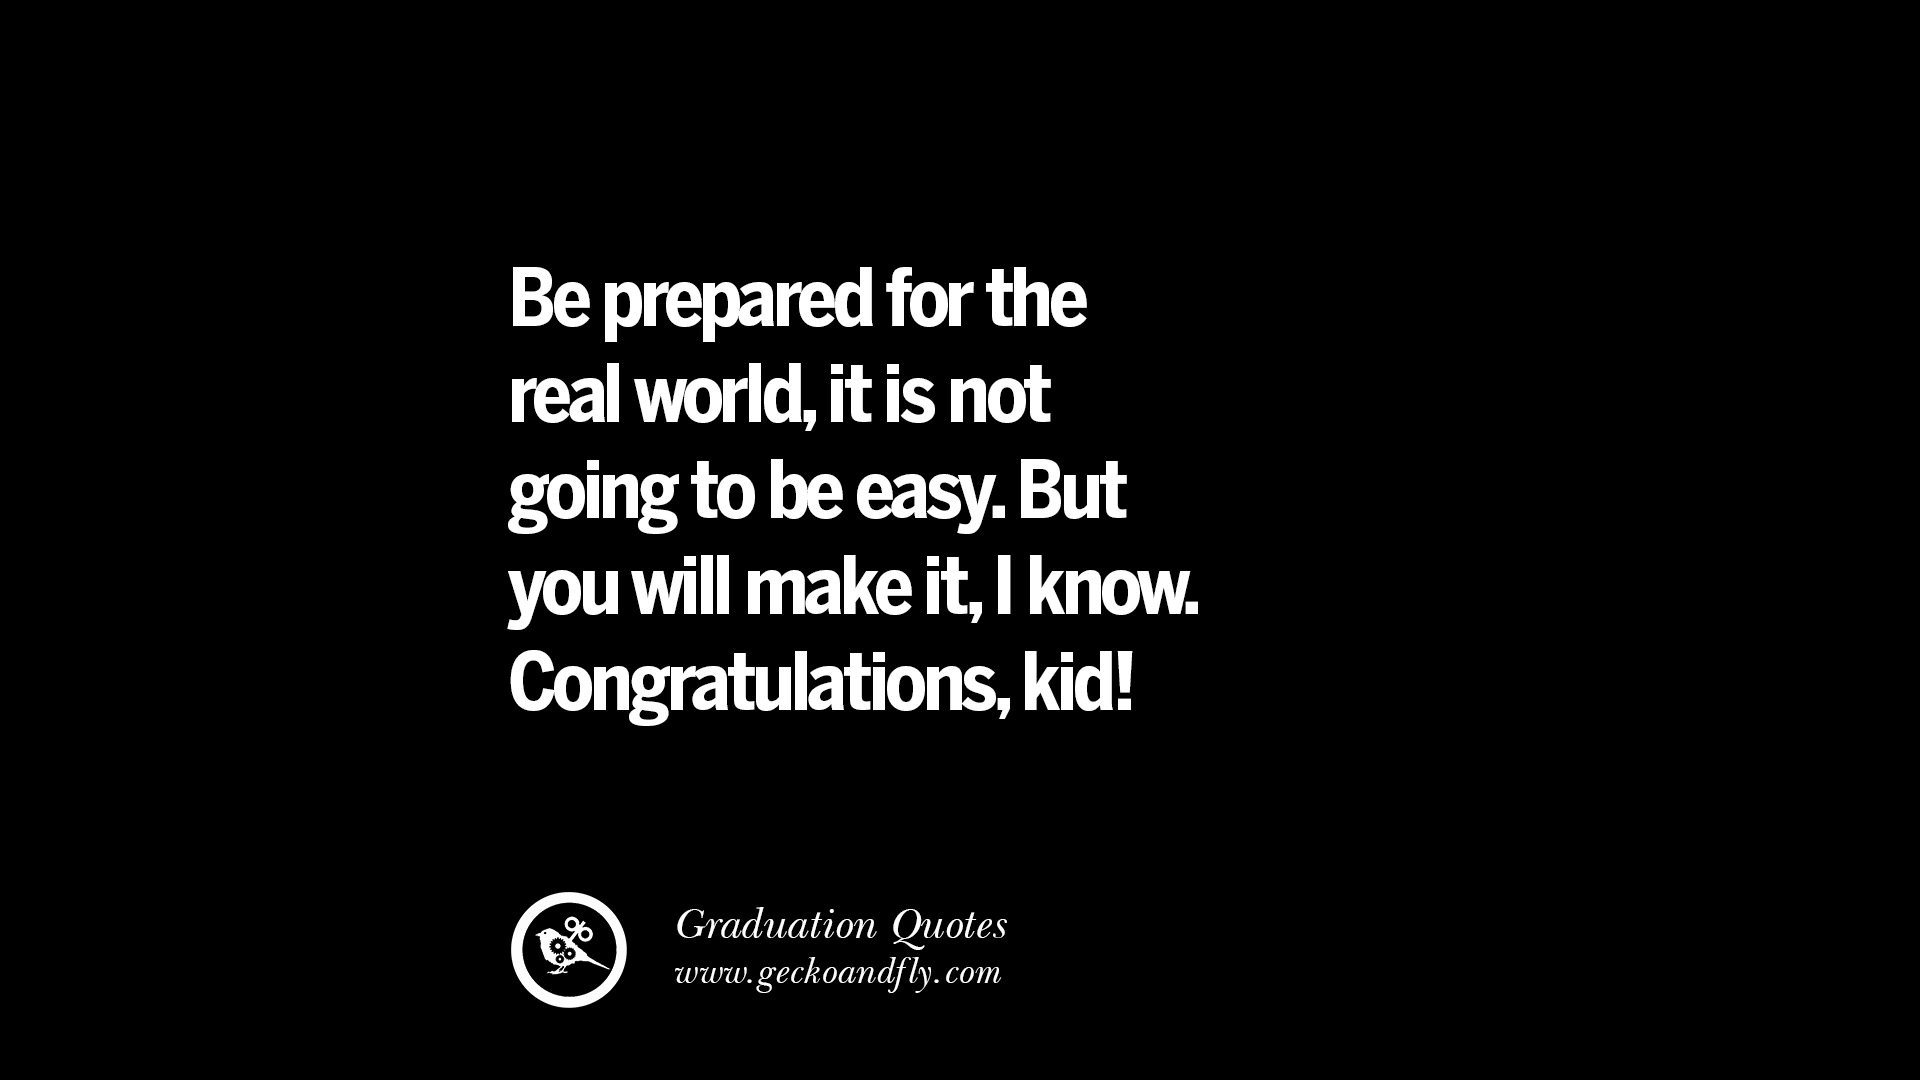 Inspirational Graduation Quotes  30 Inspirational Quotes on Graduation For High School And